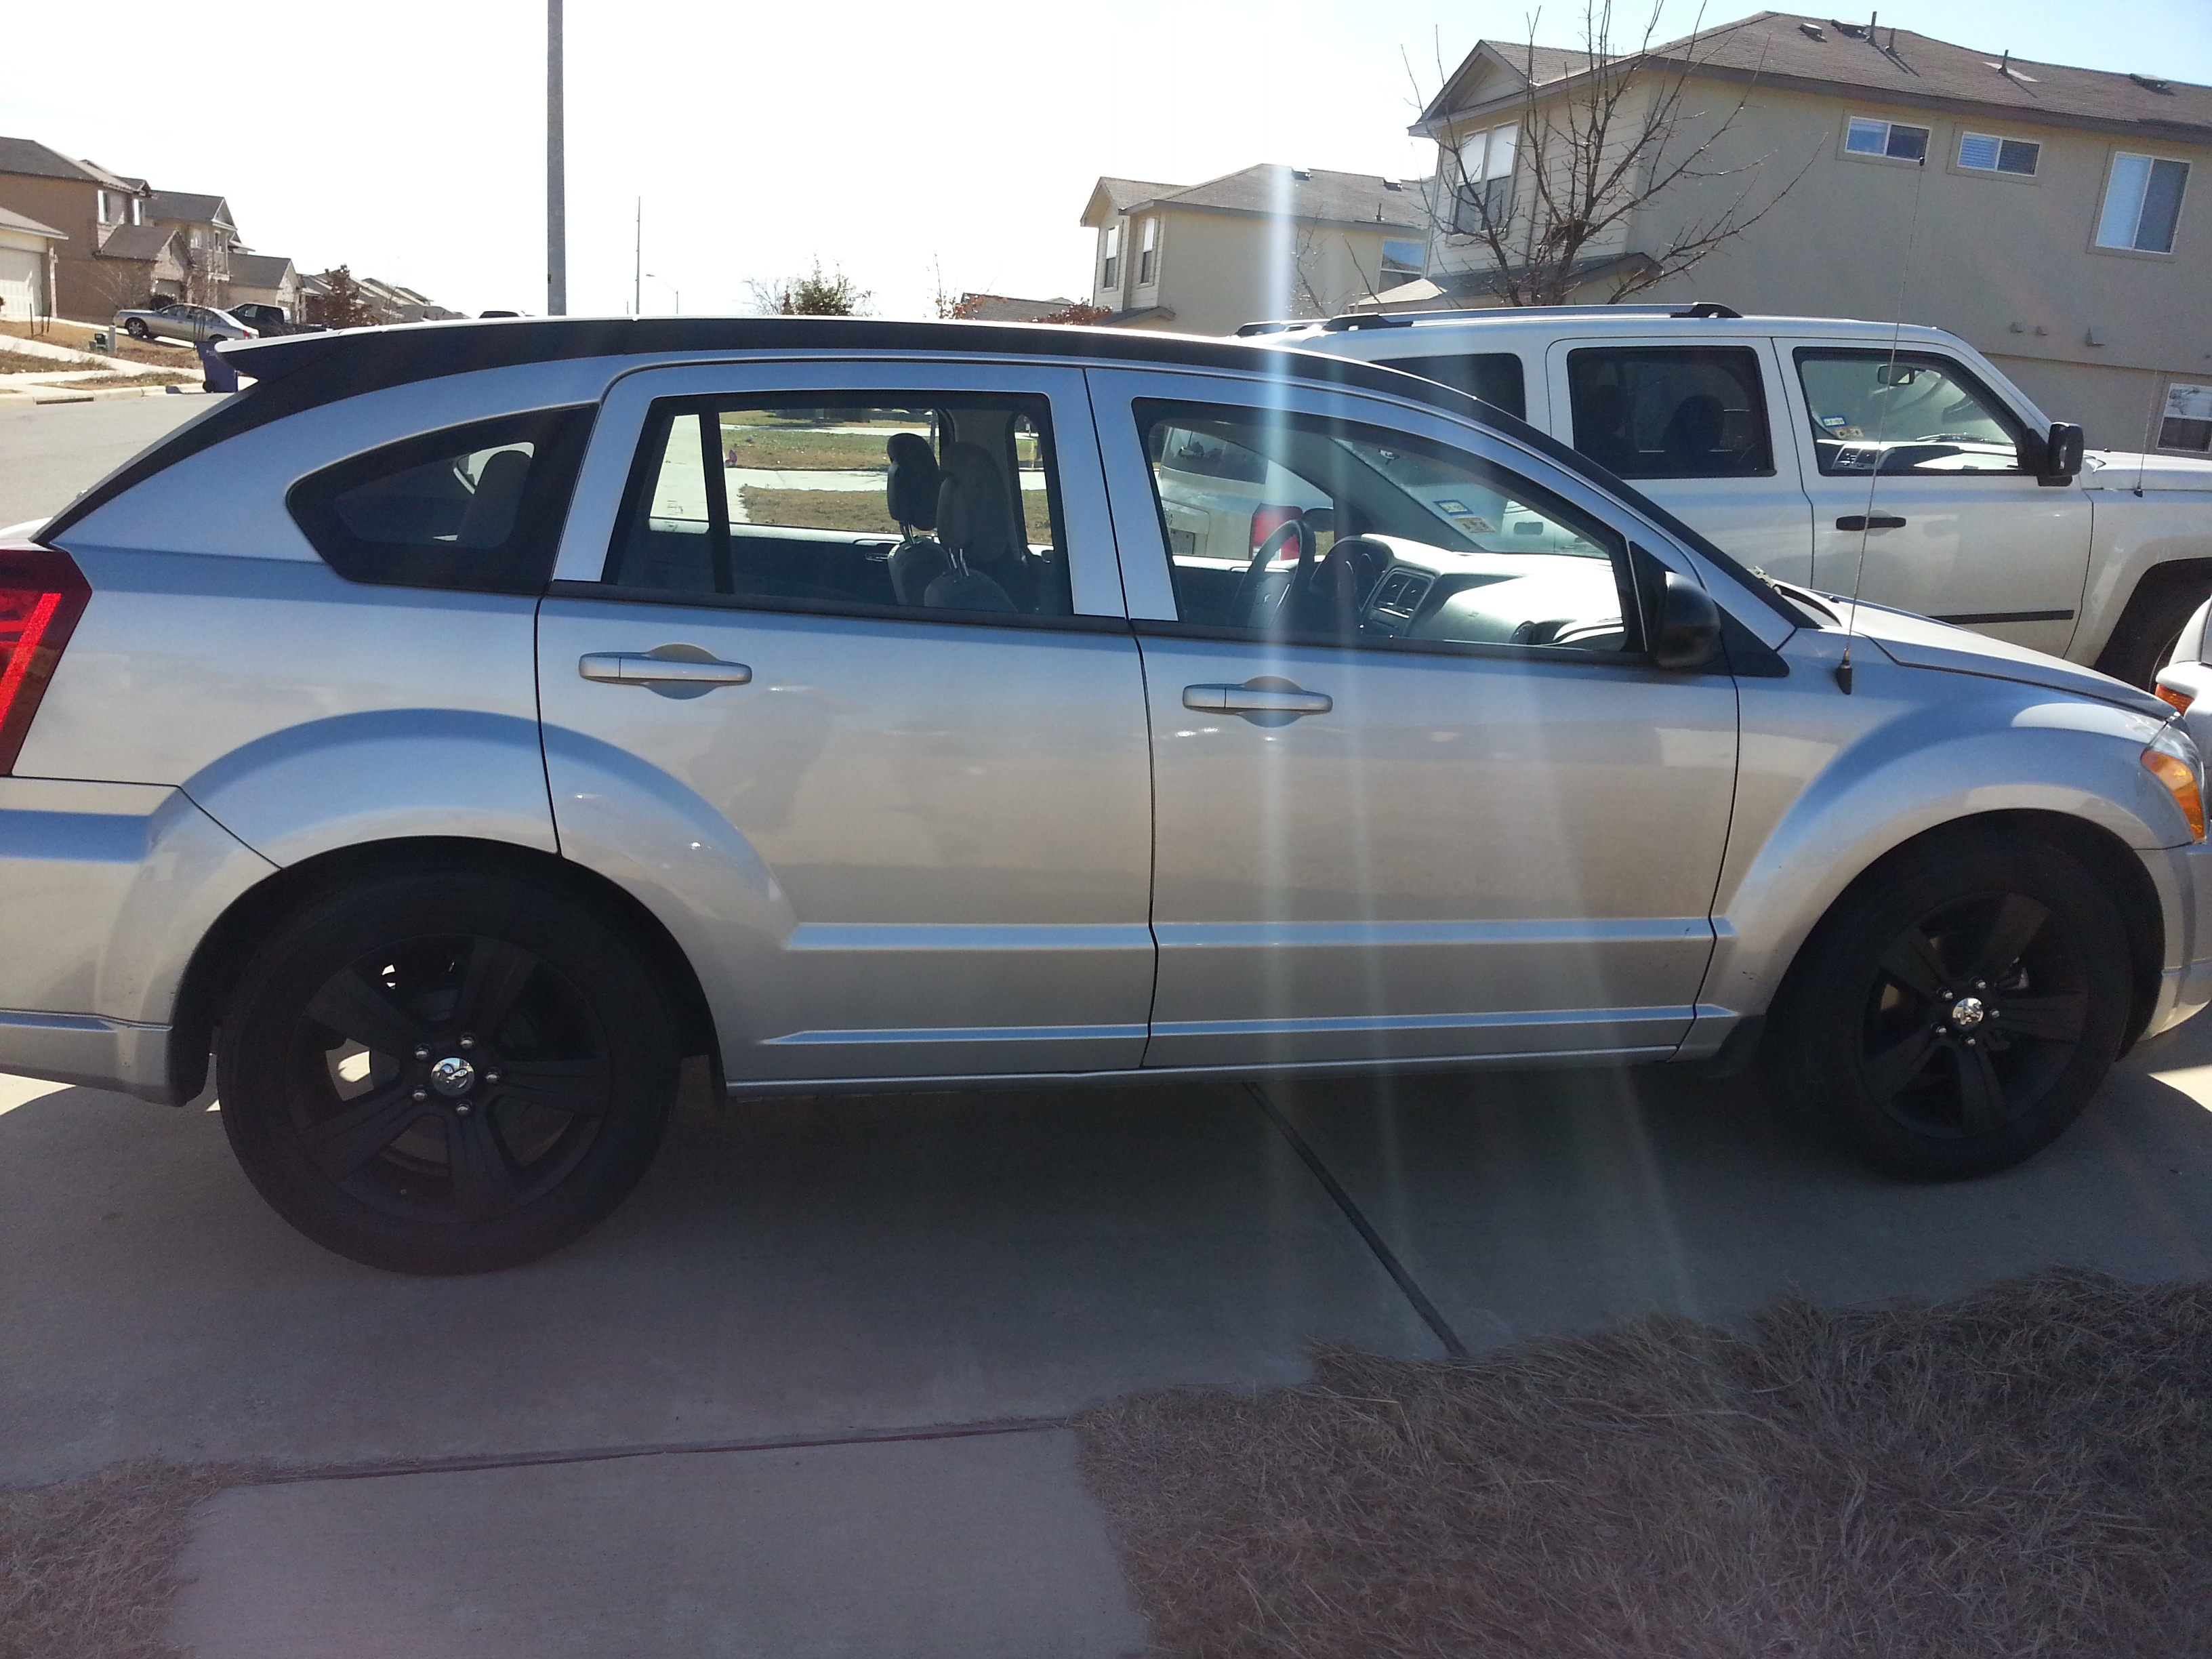 JohnSeng 2010 Dodge Caliber